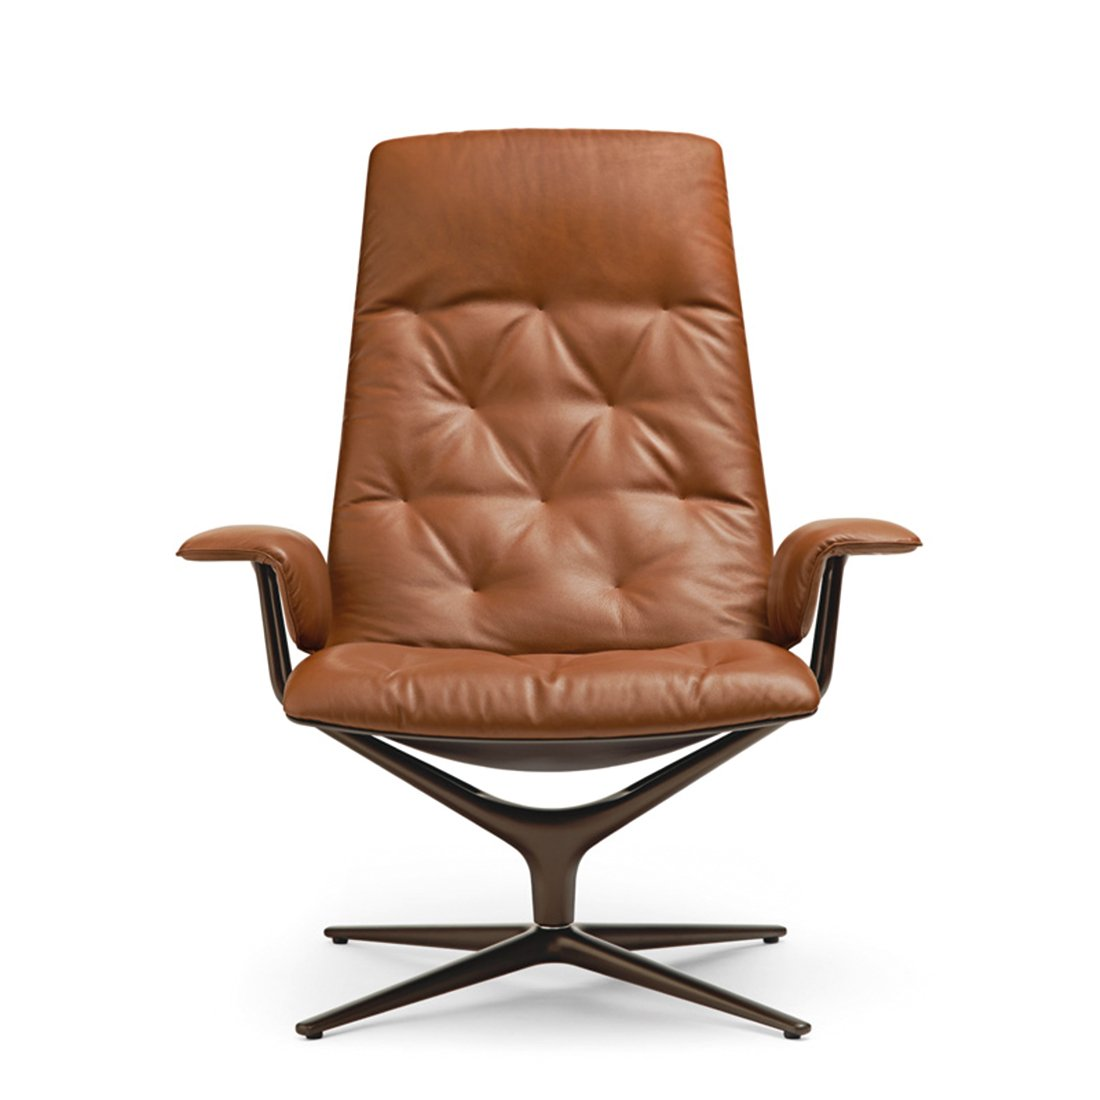 Walter Knoll Healey Soft Fauteuil